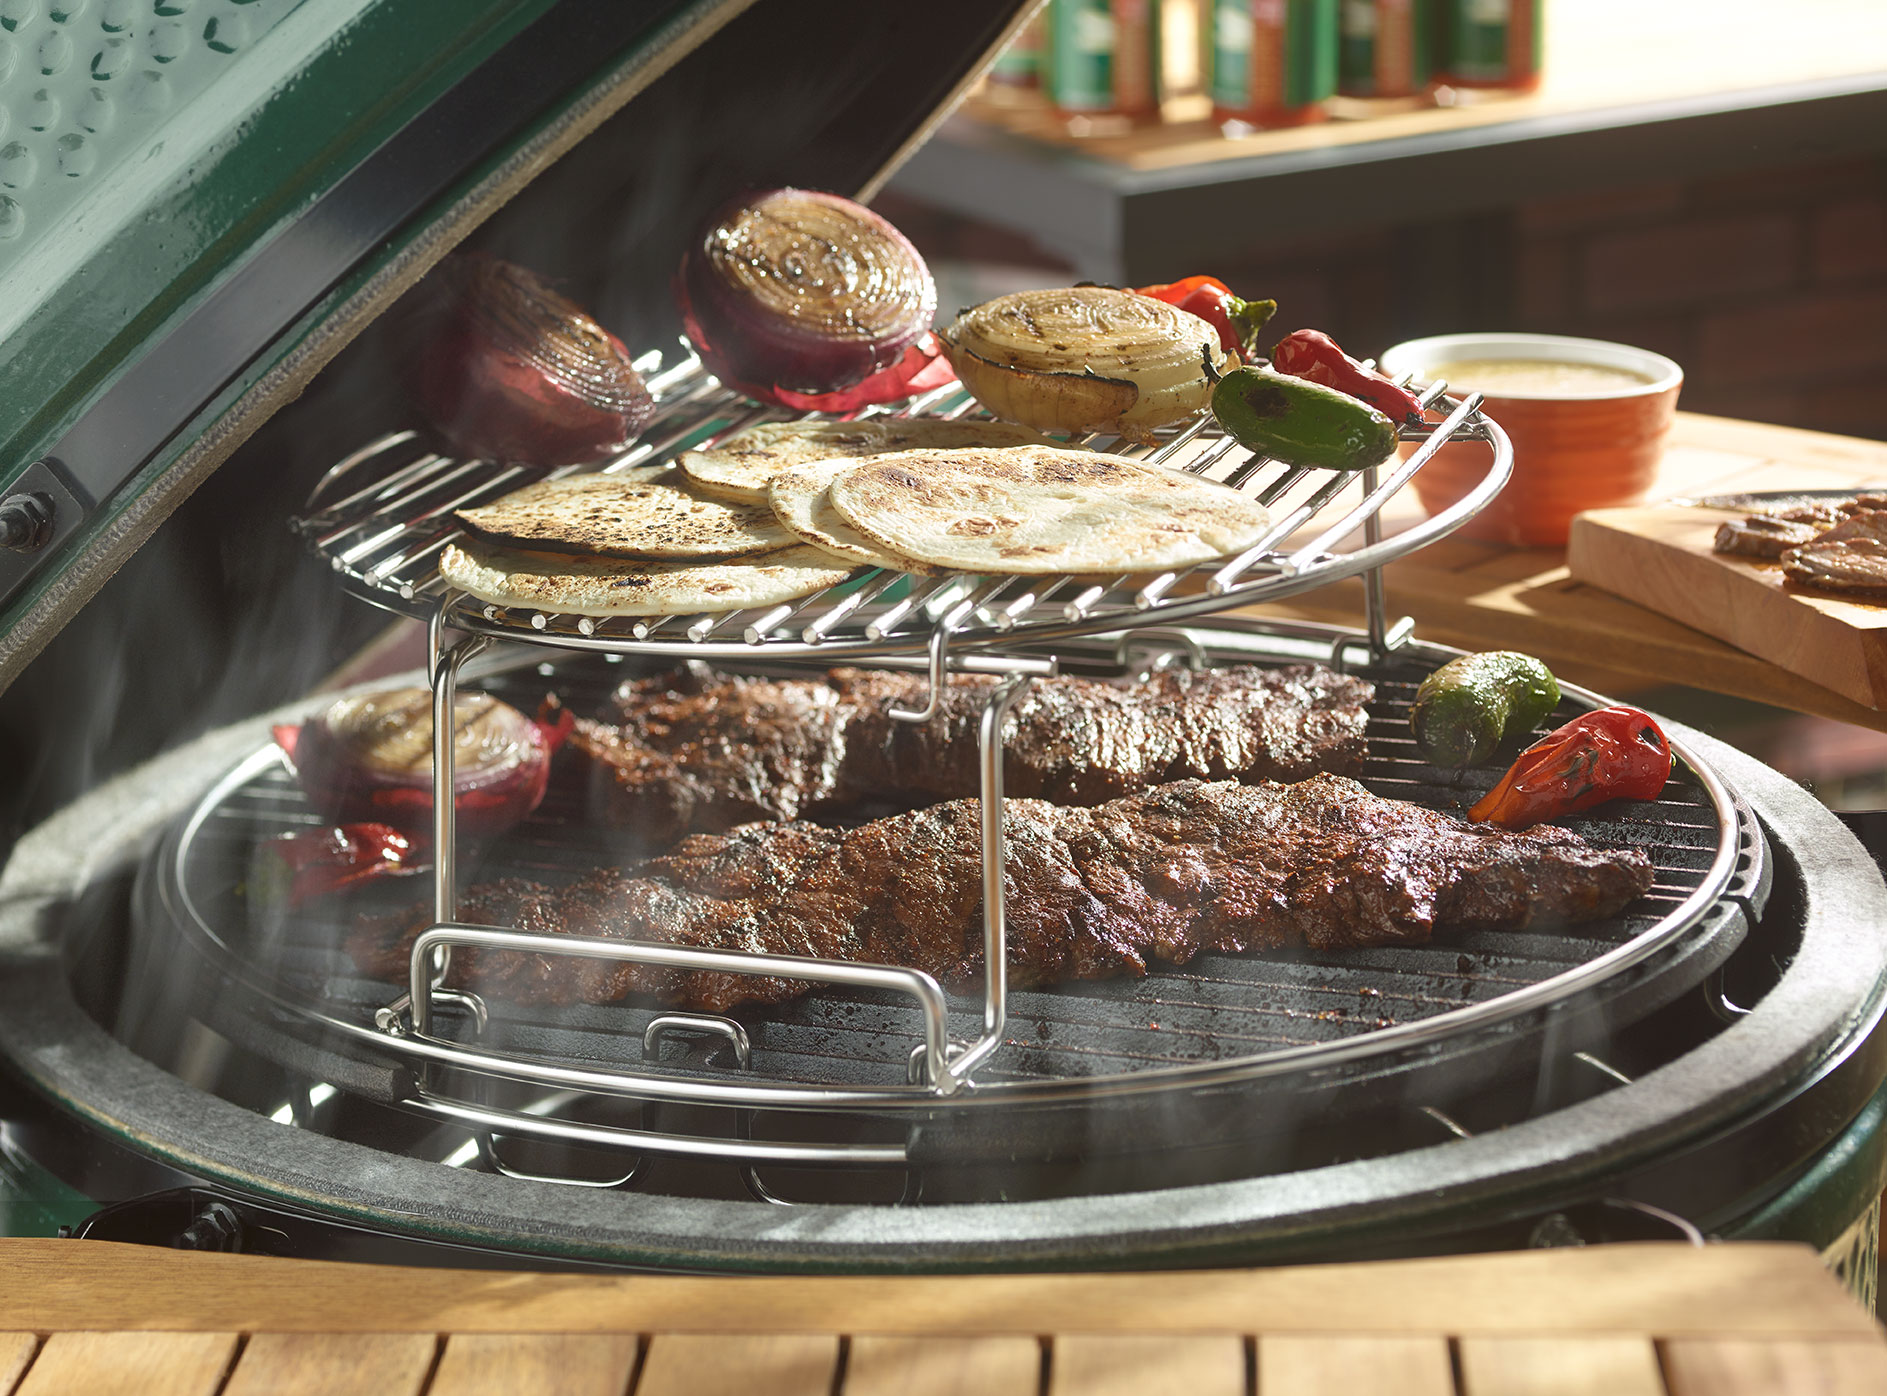 An image of a big green egg grill in use.